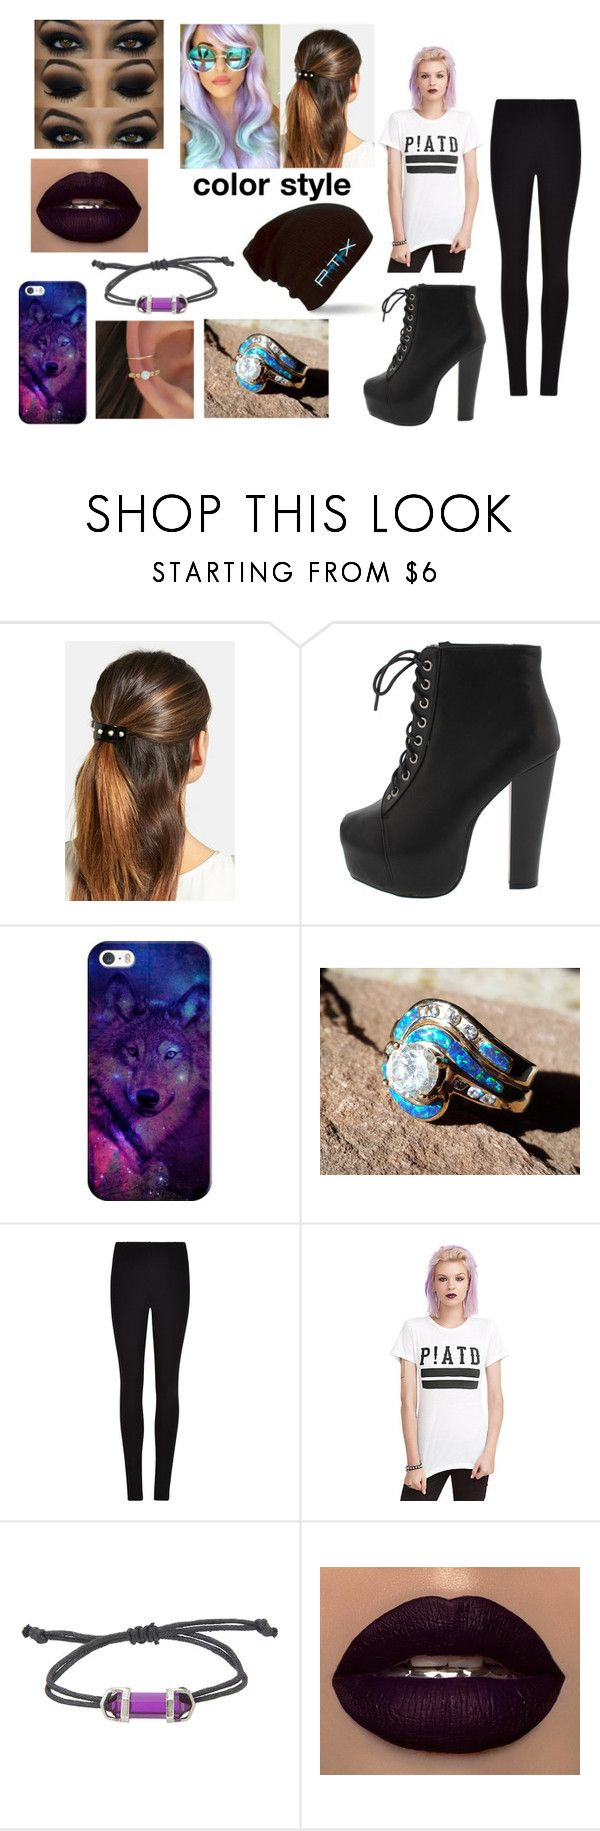 """""""Shopping with the Squad"""" by sup3rfruitdjooptx ❤ liked on Polyvore featuring L. Erickson, Casetify and Winser London"""